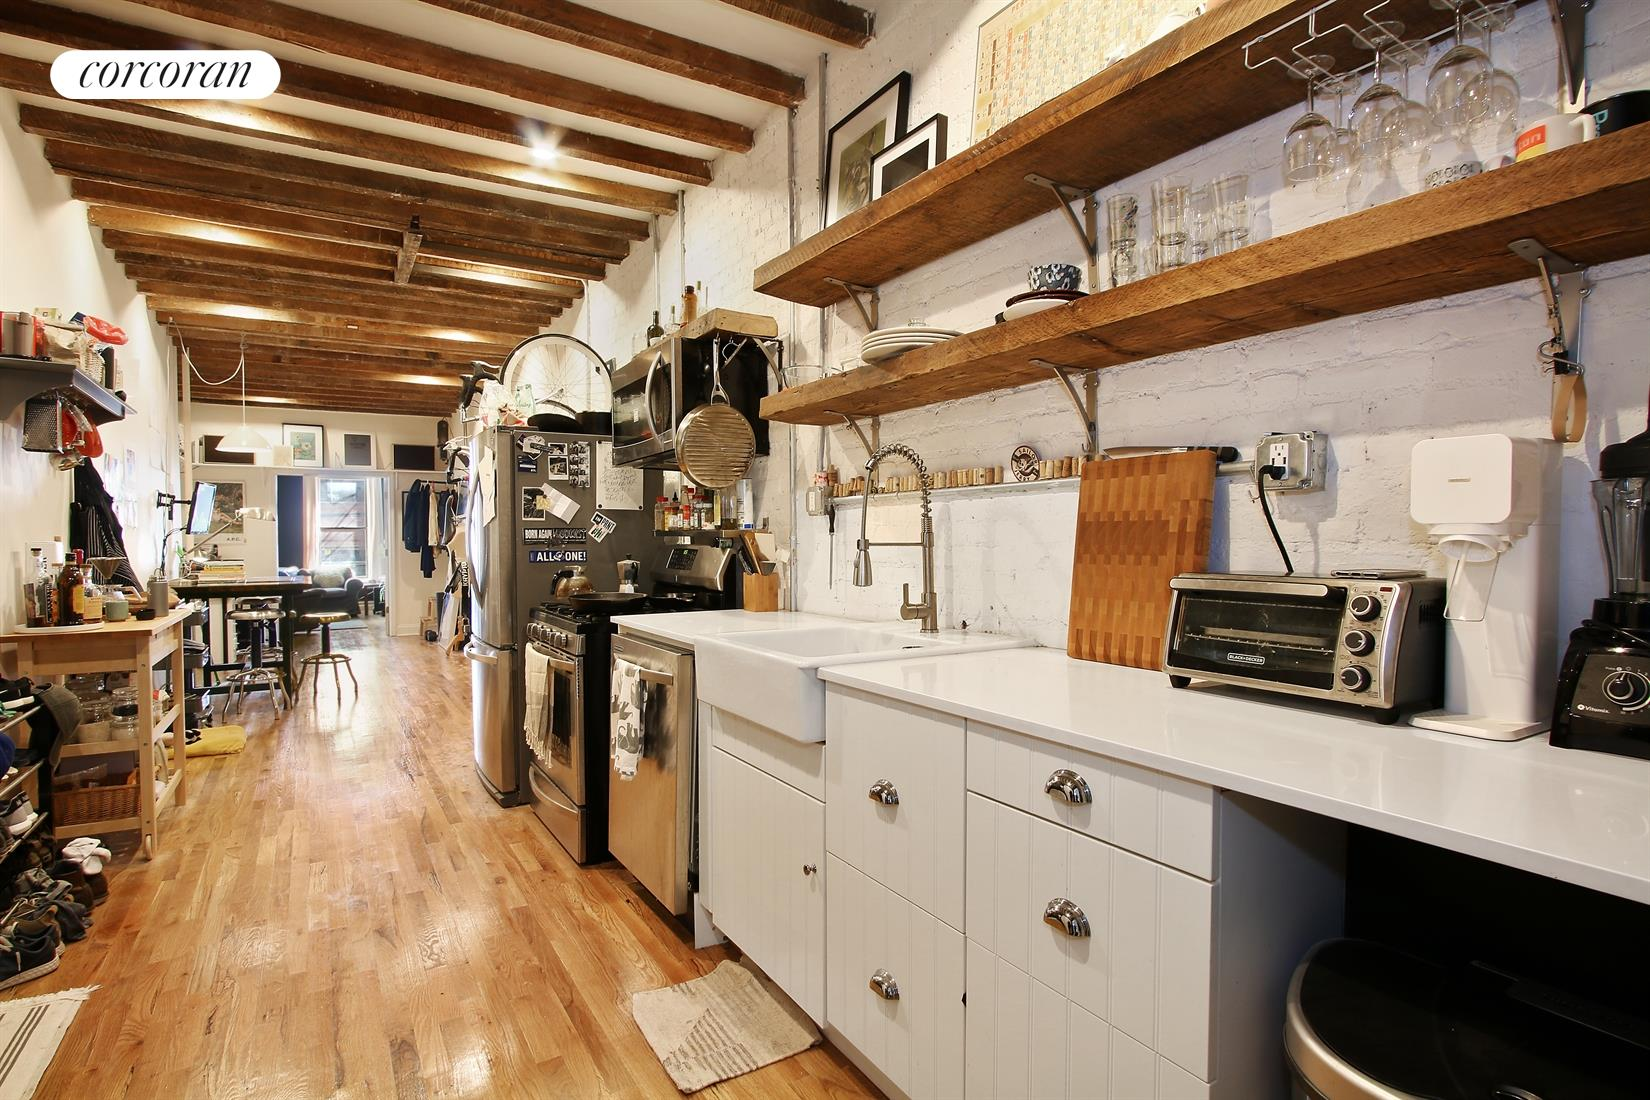 Income Property for Sale at 126 Wyckoff Avenue 126 Wyckoff Avenue Brooklyn, New York 10013 United States